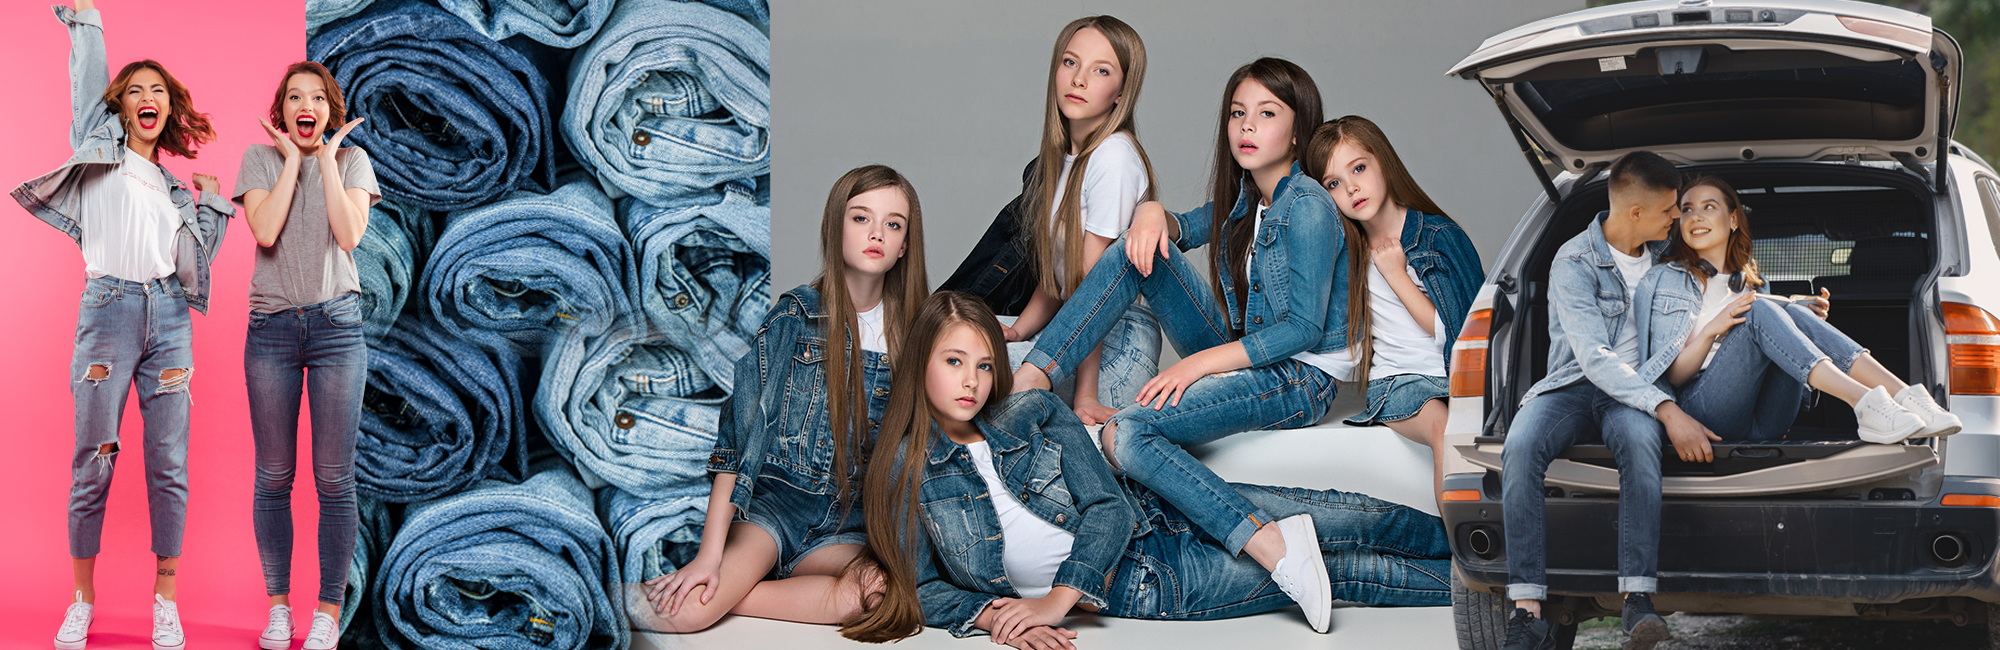 Fabric Traders are denim specialists